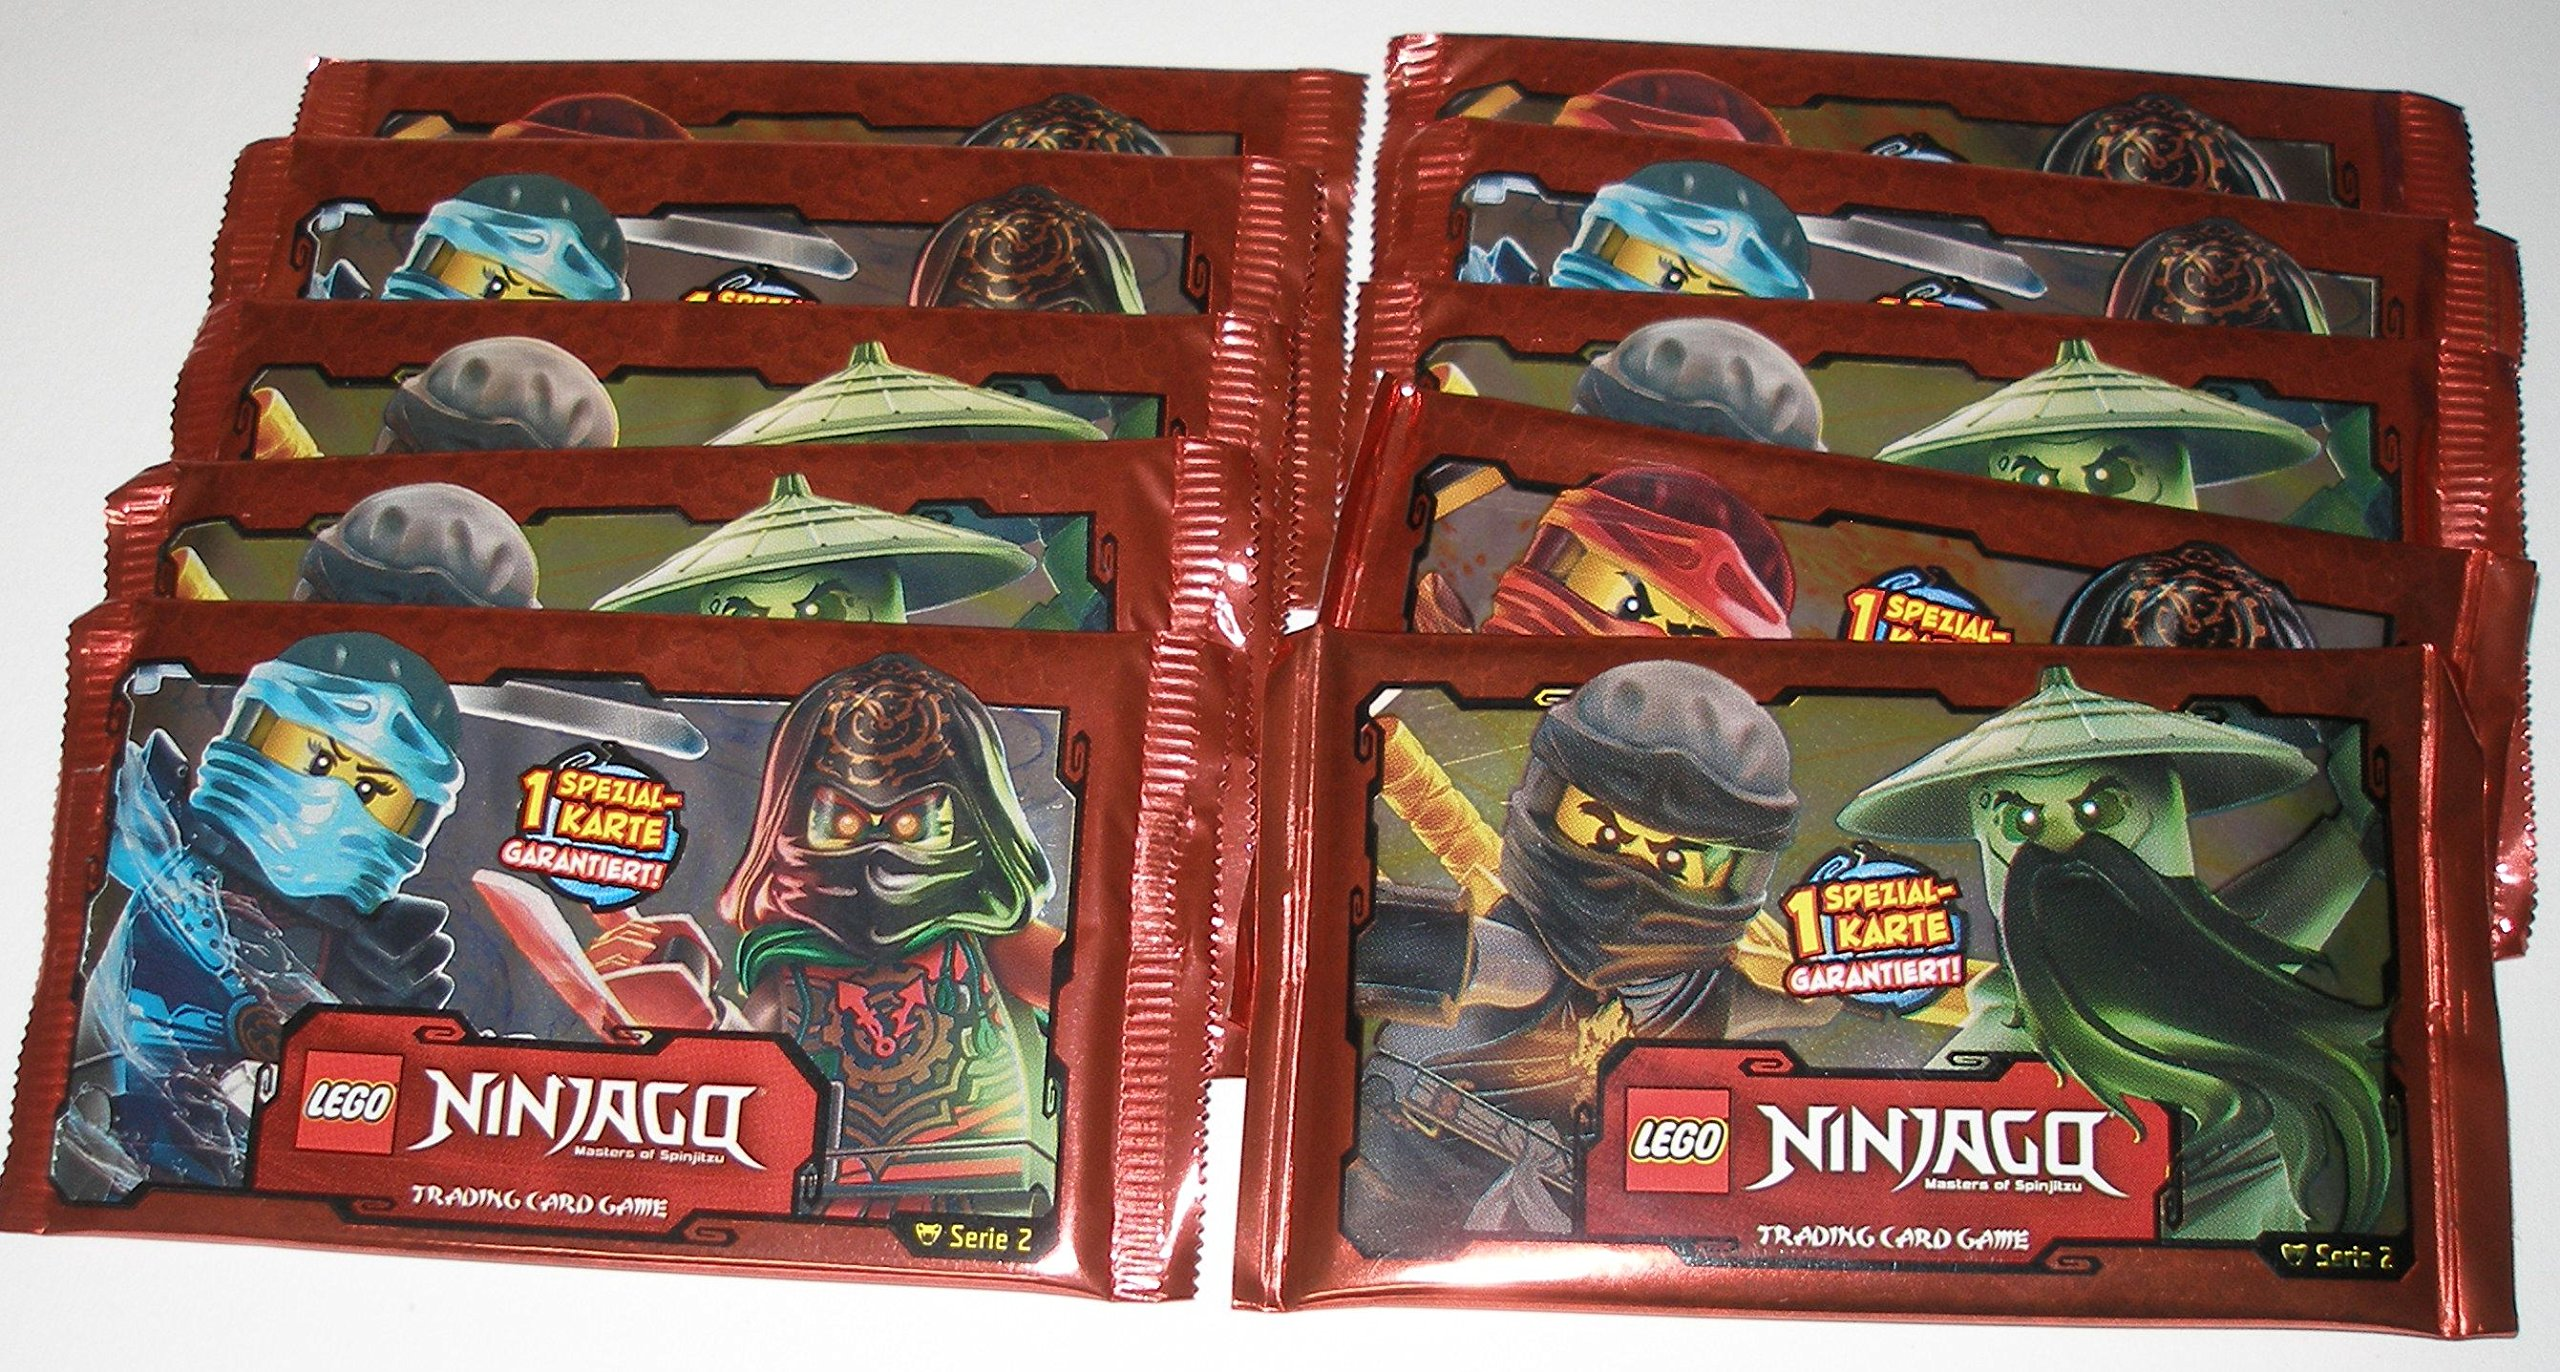 LEGO Booster Ninjago Series 2 Cards Pack of 10 Pack of 5 Cards